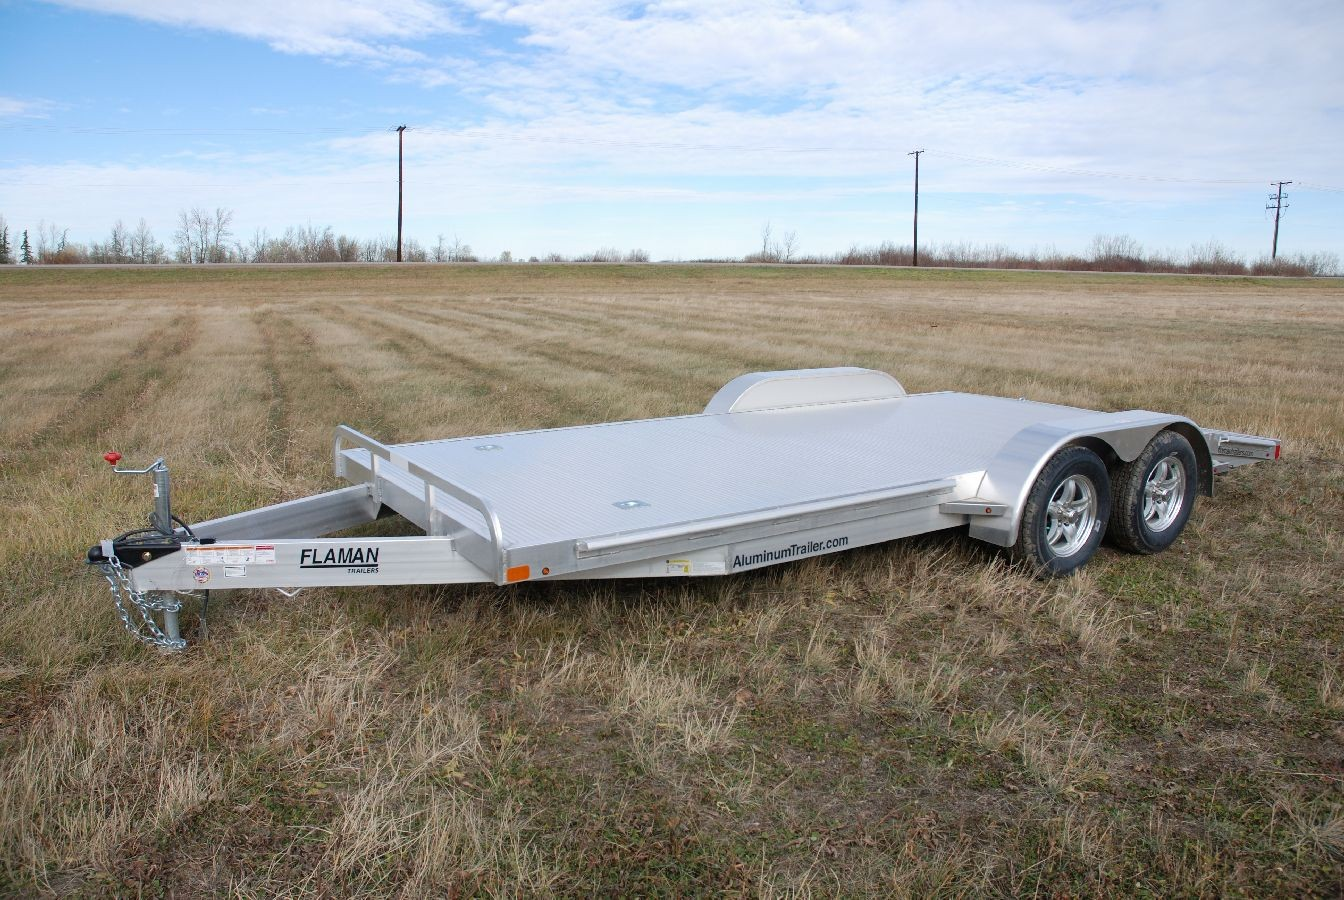 Metalian Maxi 4x4 Off Road C ing Trailers as well 8 5x26 Enclosed Aluminum Trailer w 2F Front  26 Rear R  Doors  2810 2C000 LB G V W R 29 in addition Aluma Flatdeck Tilt Trailers in addition Item moreover Transport Petrol Trailer Heavy Fuel Oil 60432590293. on aluminum dump trailers